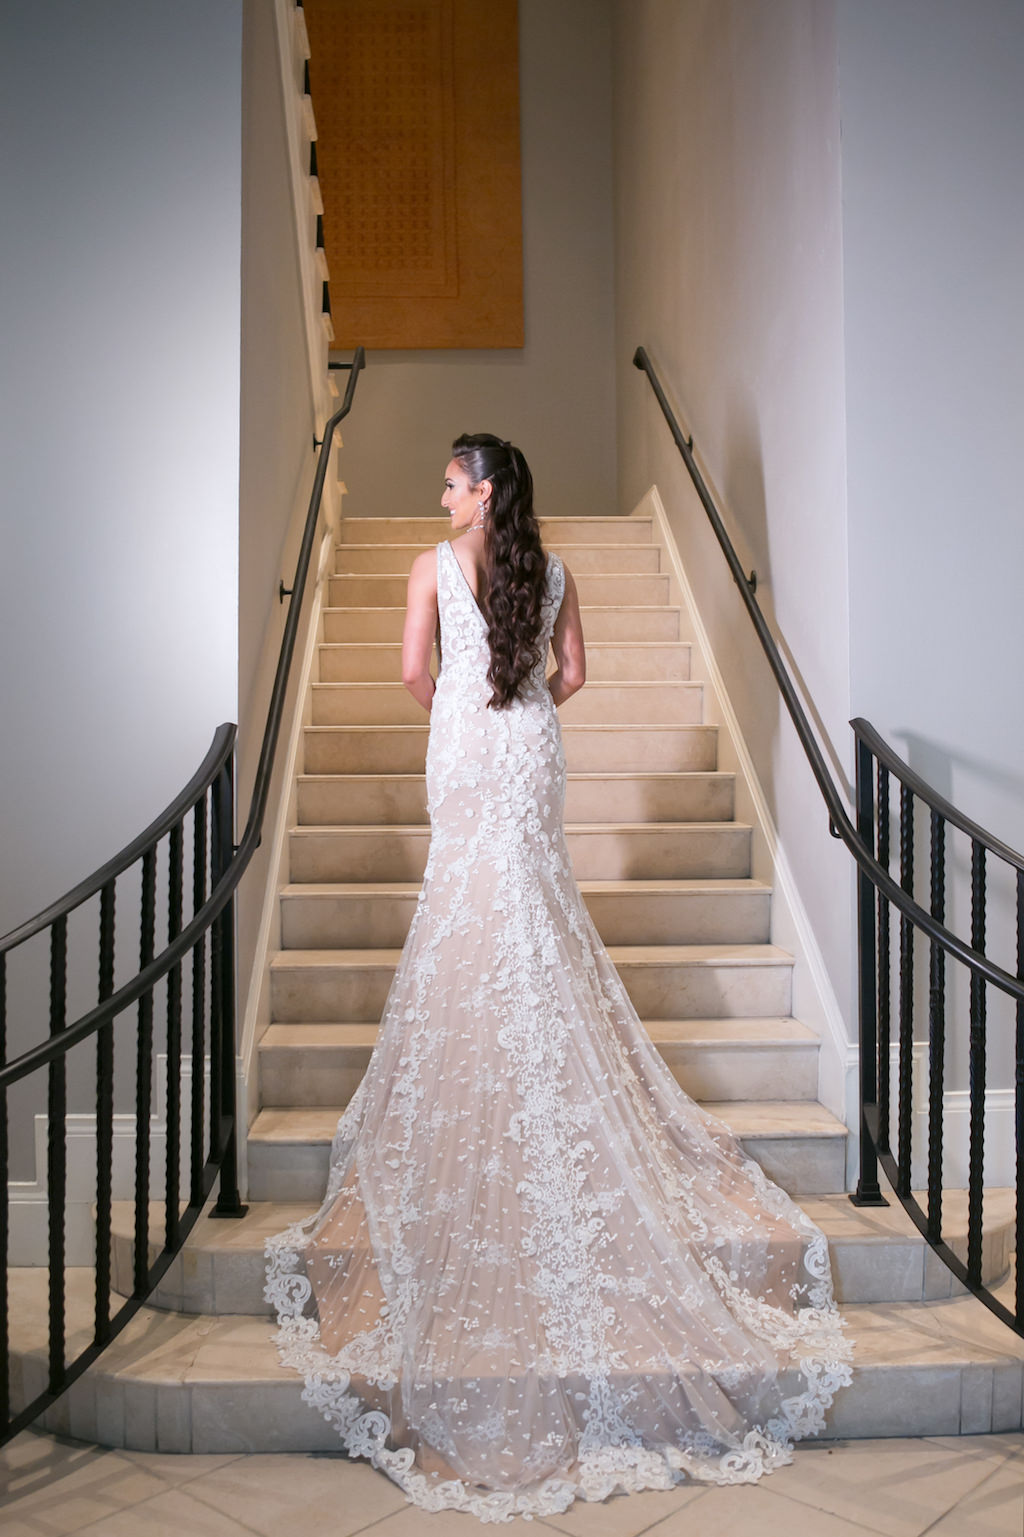 Florida Bride Wedding Portrait on Staircase, Lace and Illusion V Low Back and Tank Top Strap Wedding Dress | Tampa Bay Photographer Carrie Wildes Photography | Wedding Venue Tampa International Plaza | Hair and Makeup Destiny and Light Hair and Makeup Group | Wedding Dress Nikki's Glitz and Glam Boutique